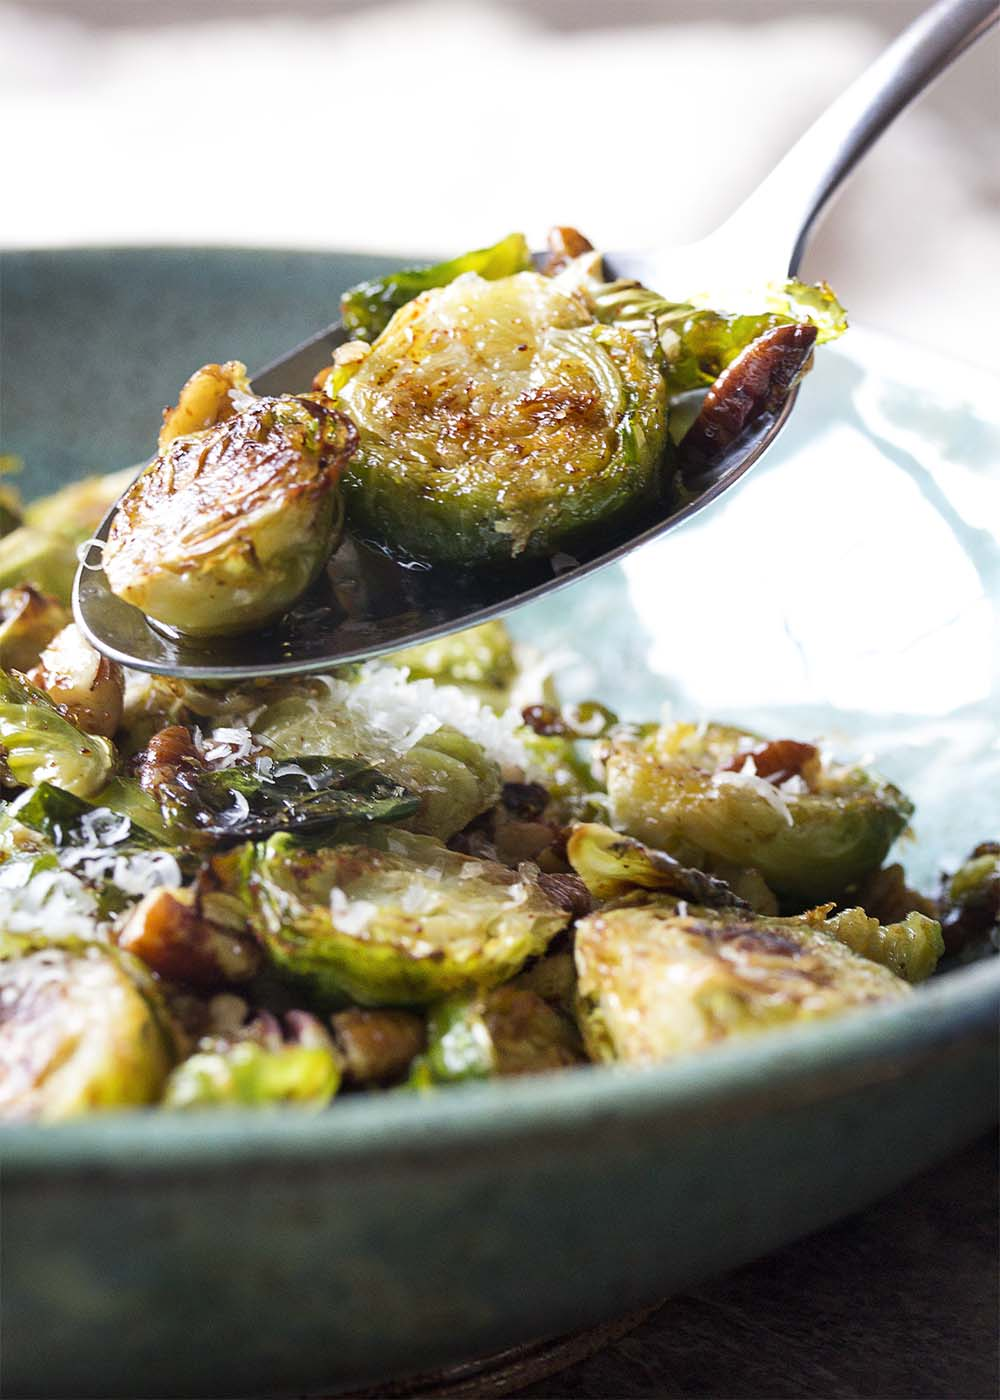 A spoonful of browned roasted brussels sprouts lifting out of the serving bowl.